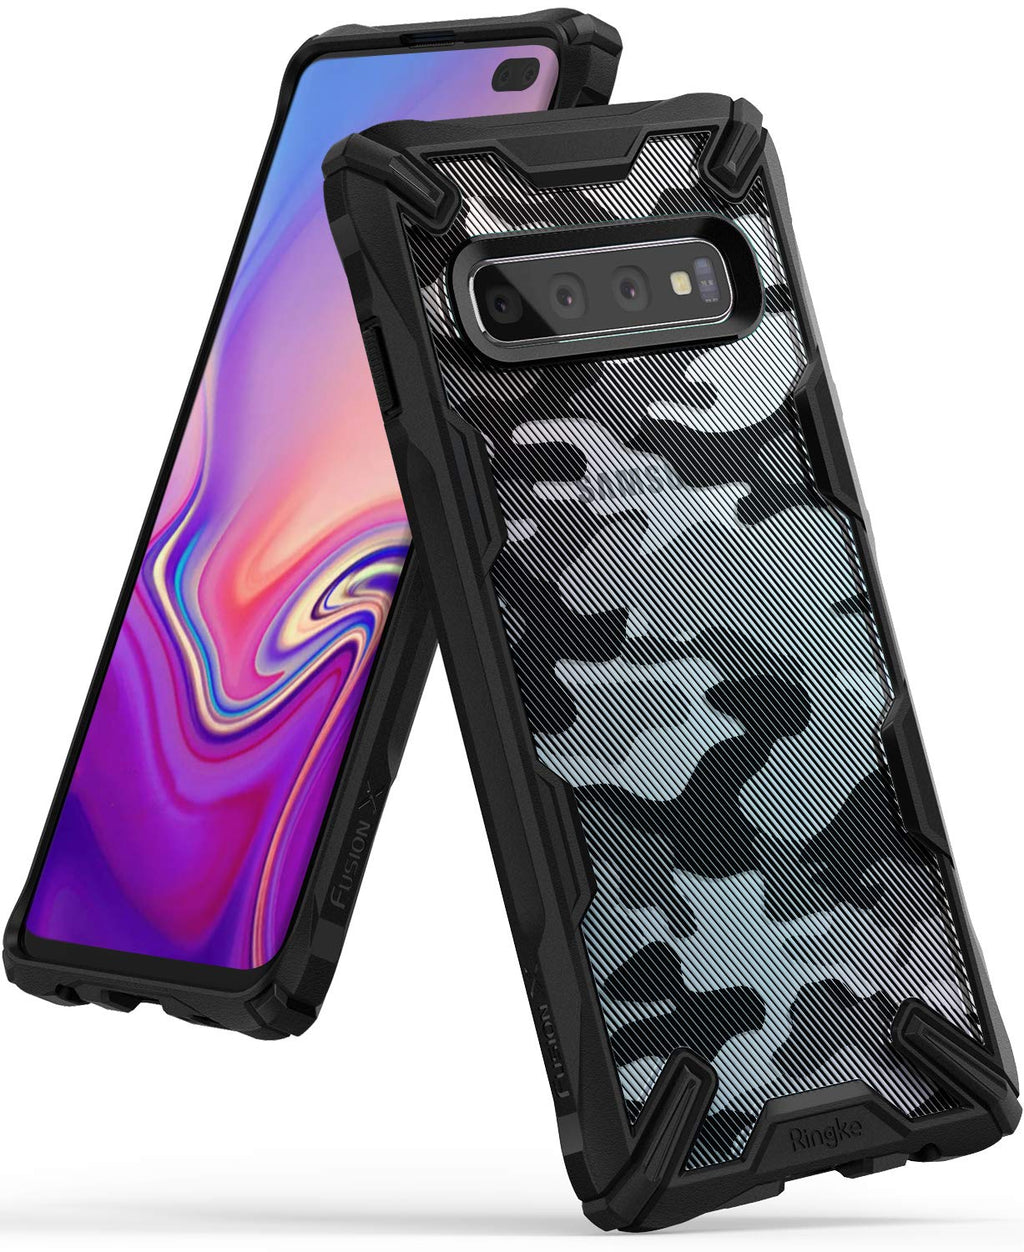 Ringke Fusion-X Design DDP Galaxy S10 Plus Case